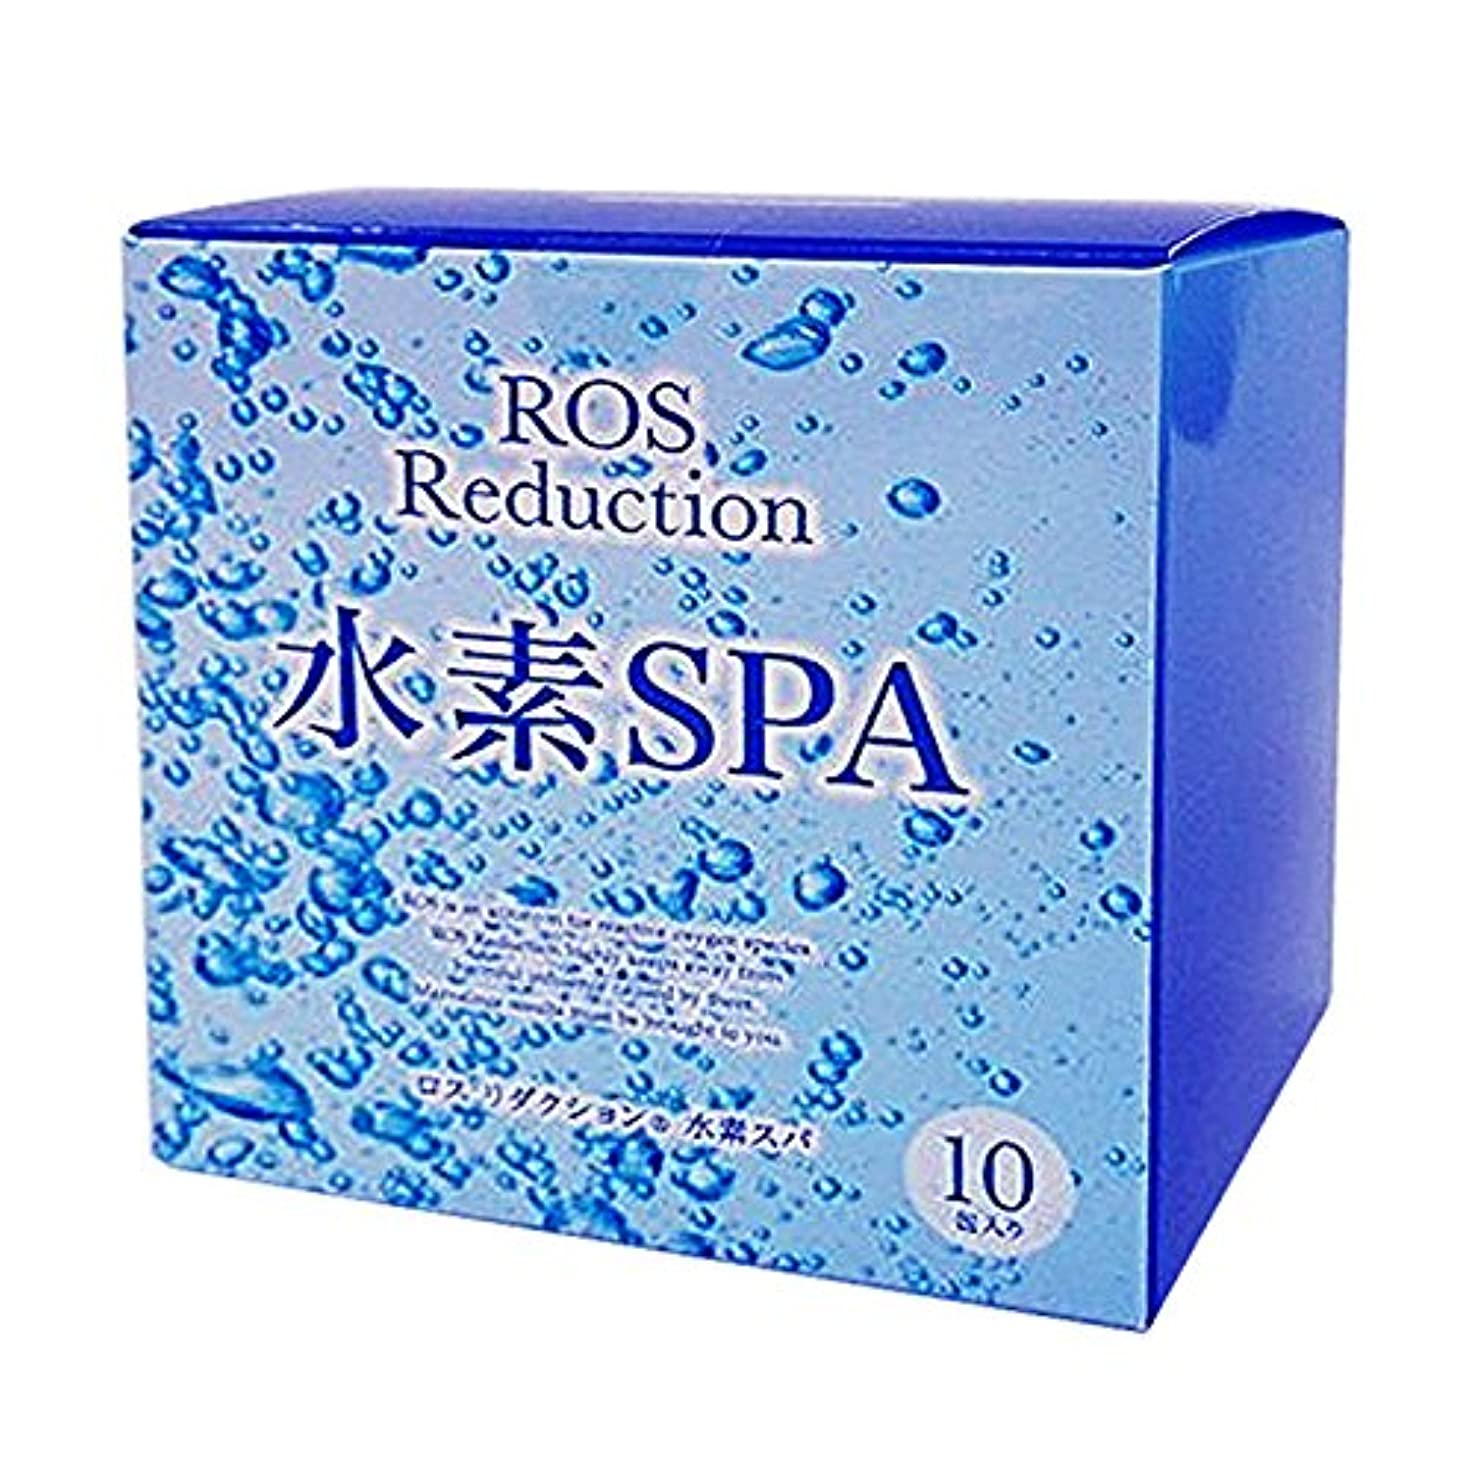 ミネラル爆発物ボウリングアメニティコーポレーション ロスリダクション 水素SPA 50g×10包